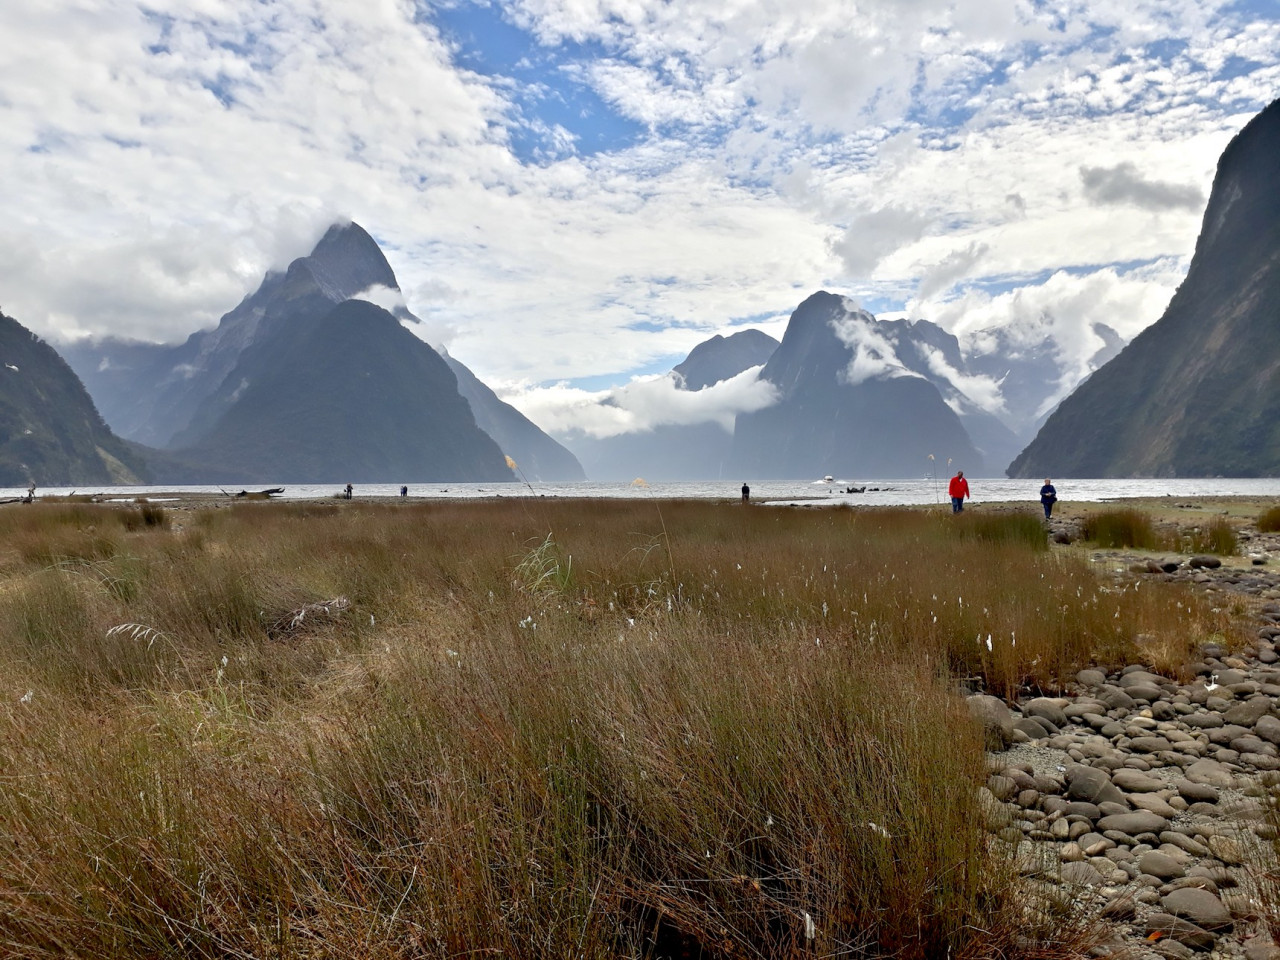 Milford Sound shrouded in wispy cloud. You can check out the actual filming location here.